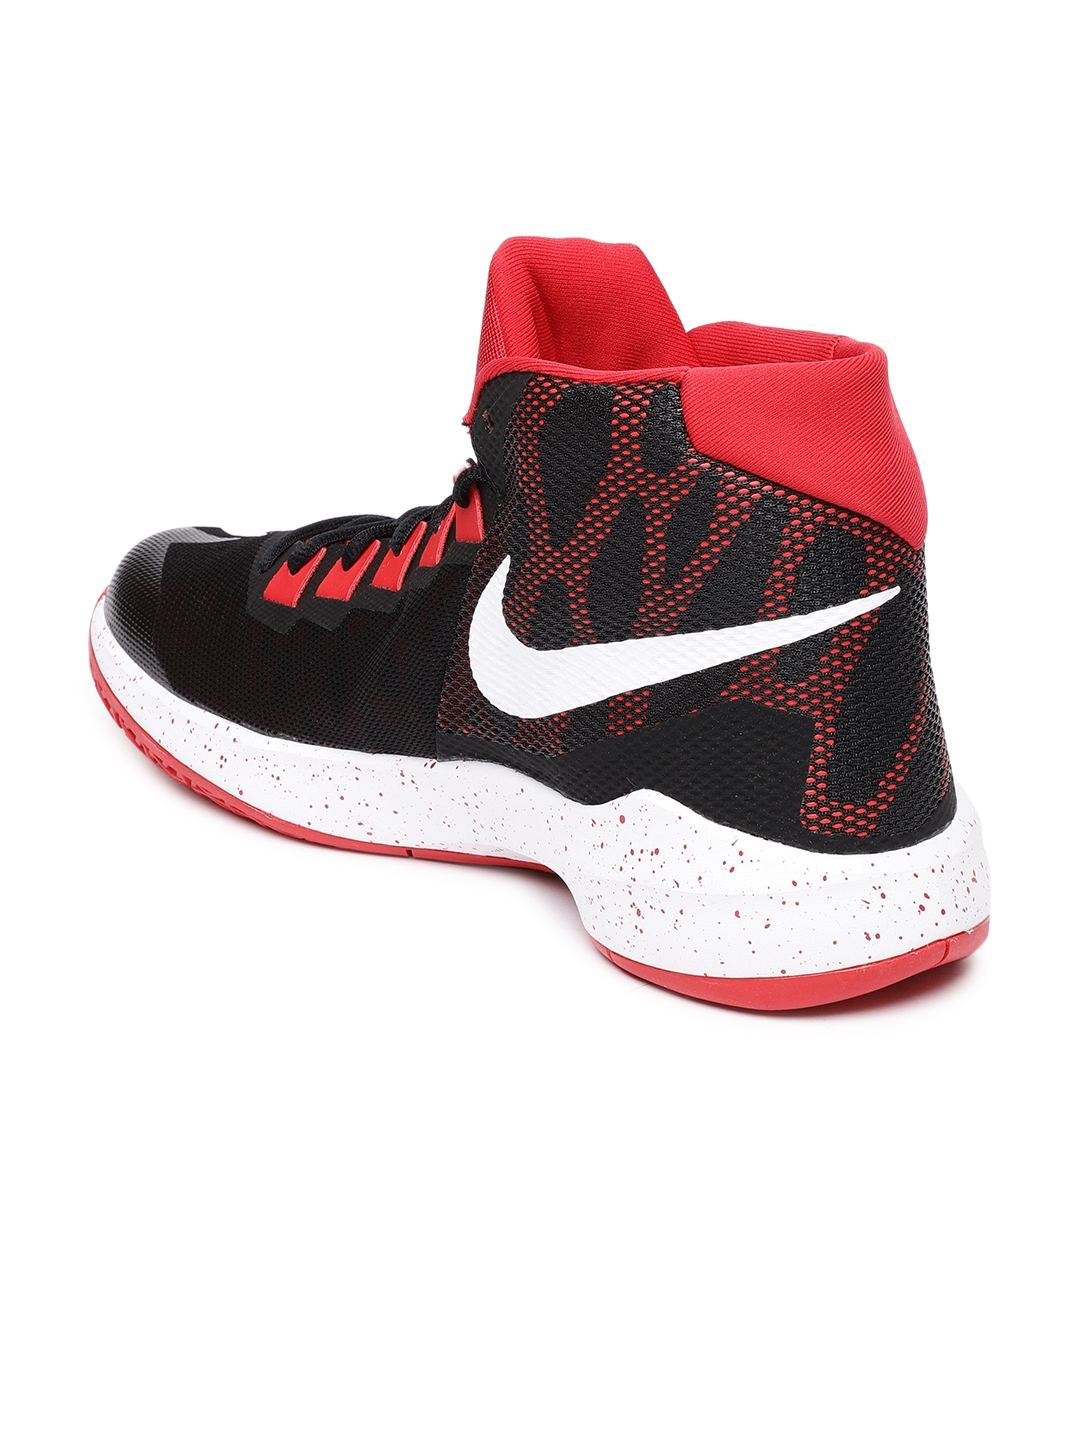 2dd0d8a54c69 Buy Nike Men Red   Black Zoom Devosion Basketball Shoes - Sports ...